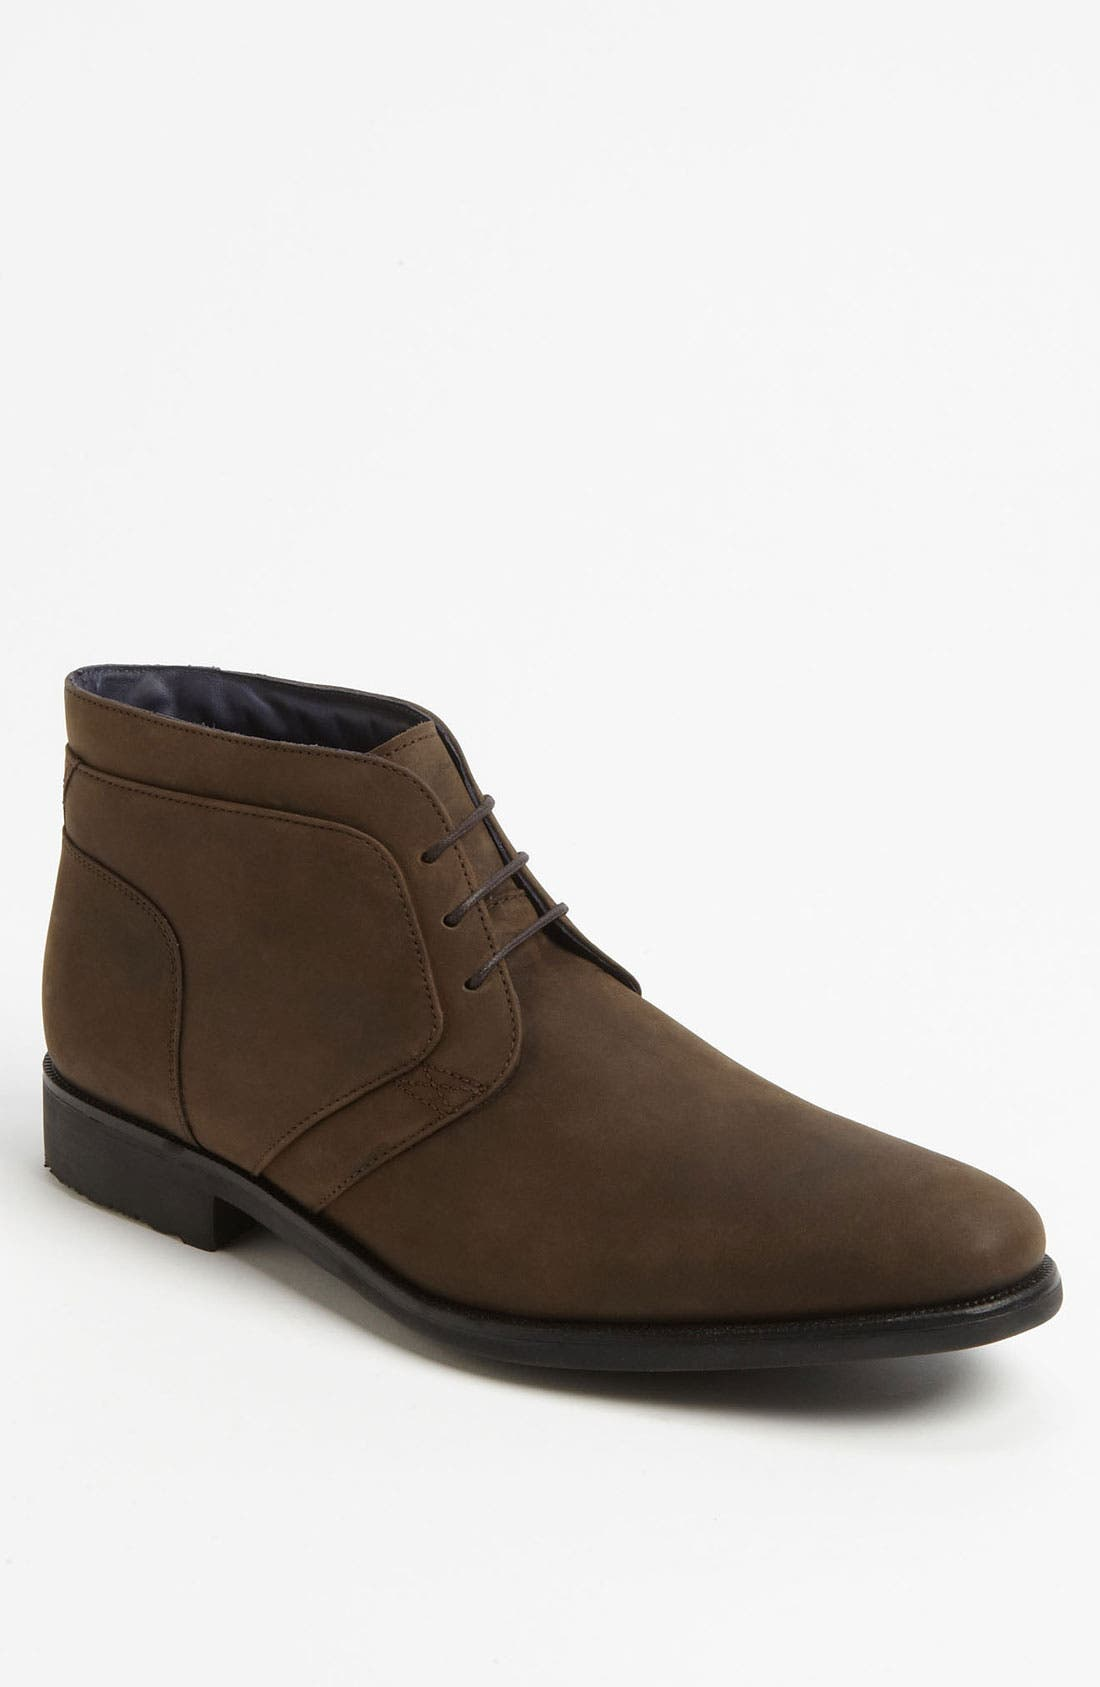 Alternate Image 1 Selected - Cole Haan 'Air Stanton' Chukka Boot